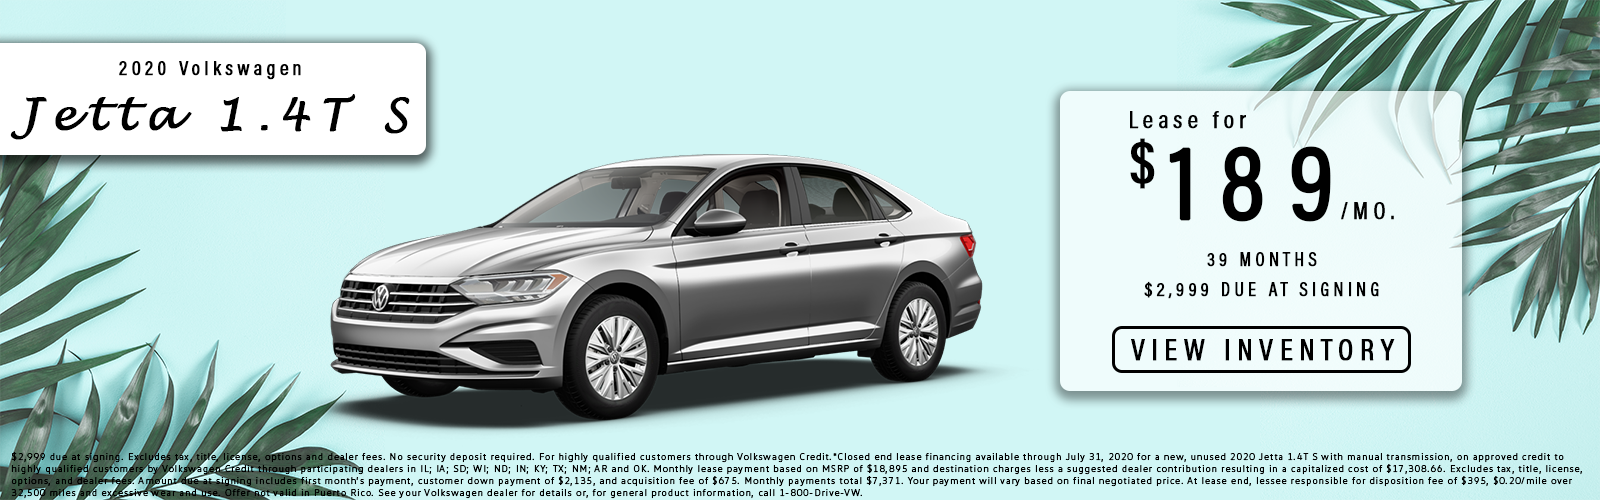 Jetta lease offer